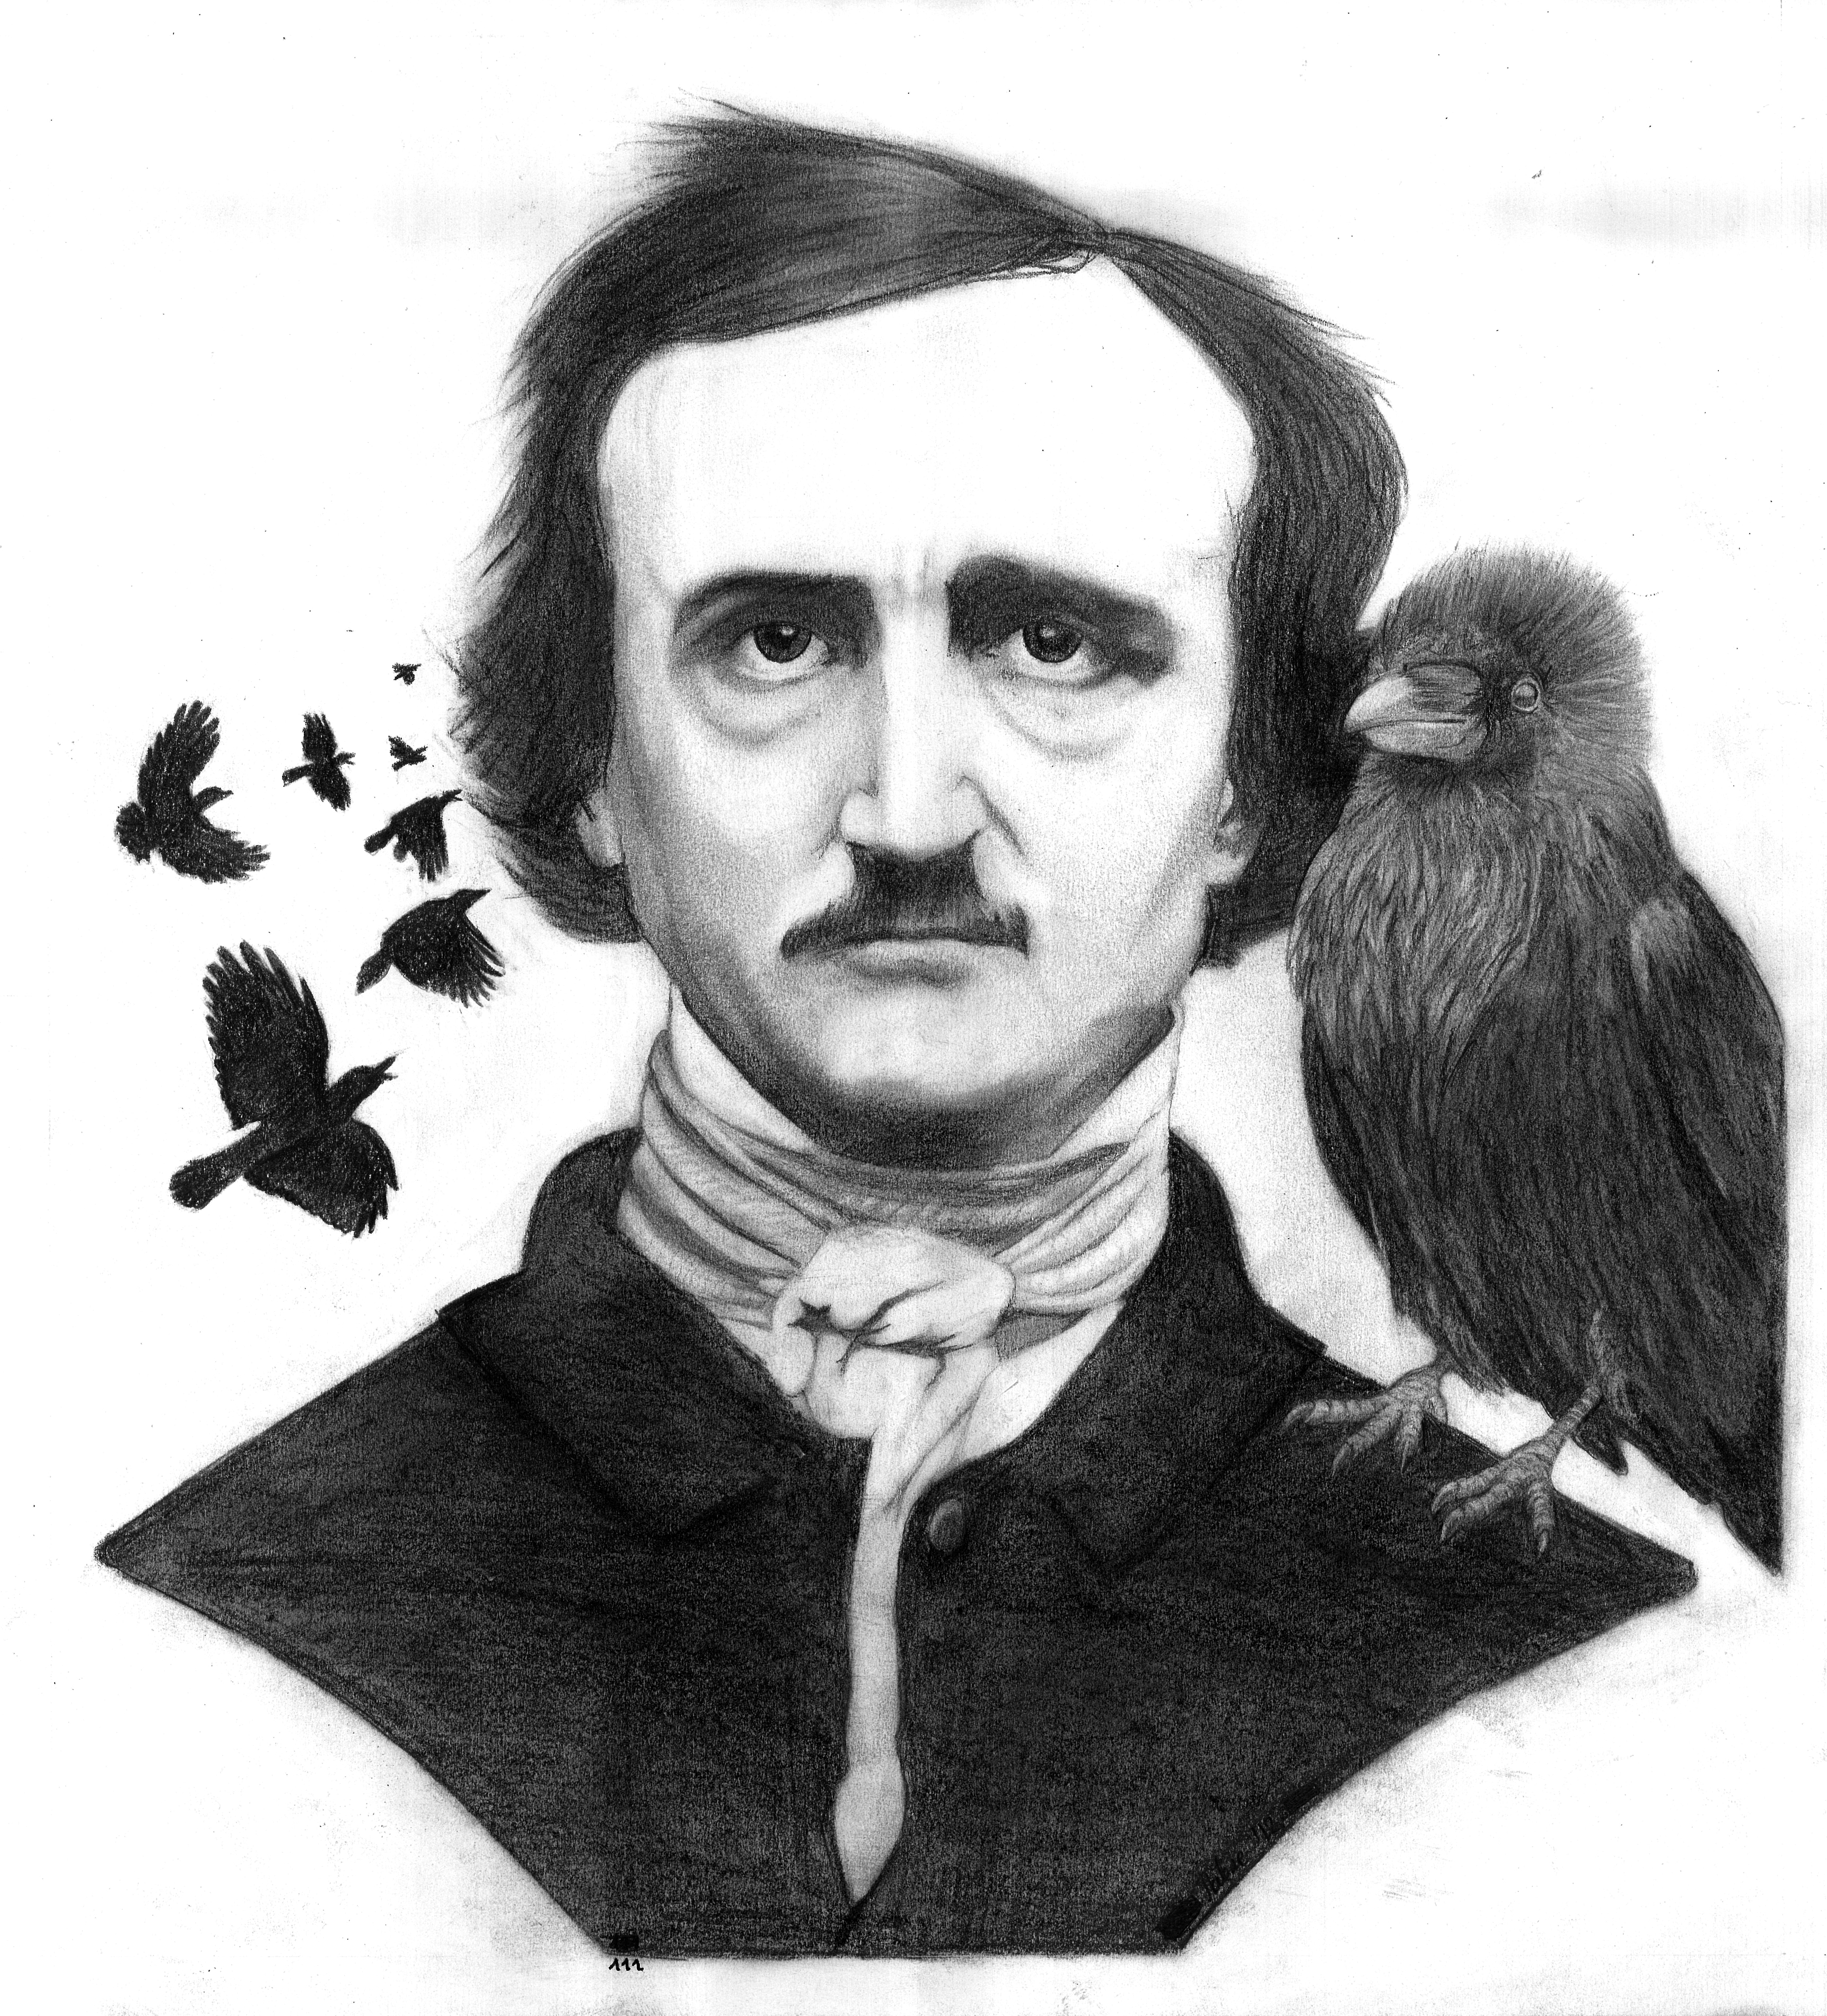 Edgar Allan Poe and the Raven by PakstraX